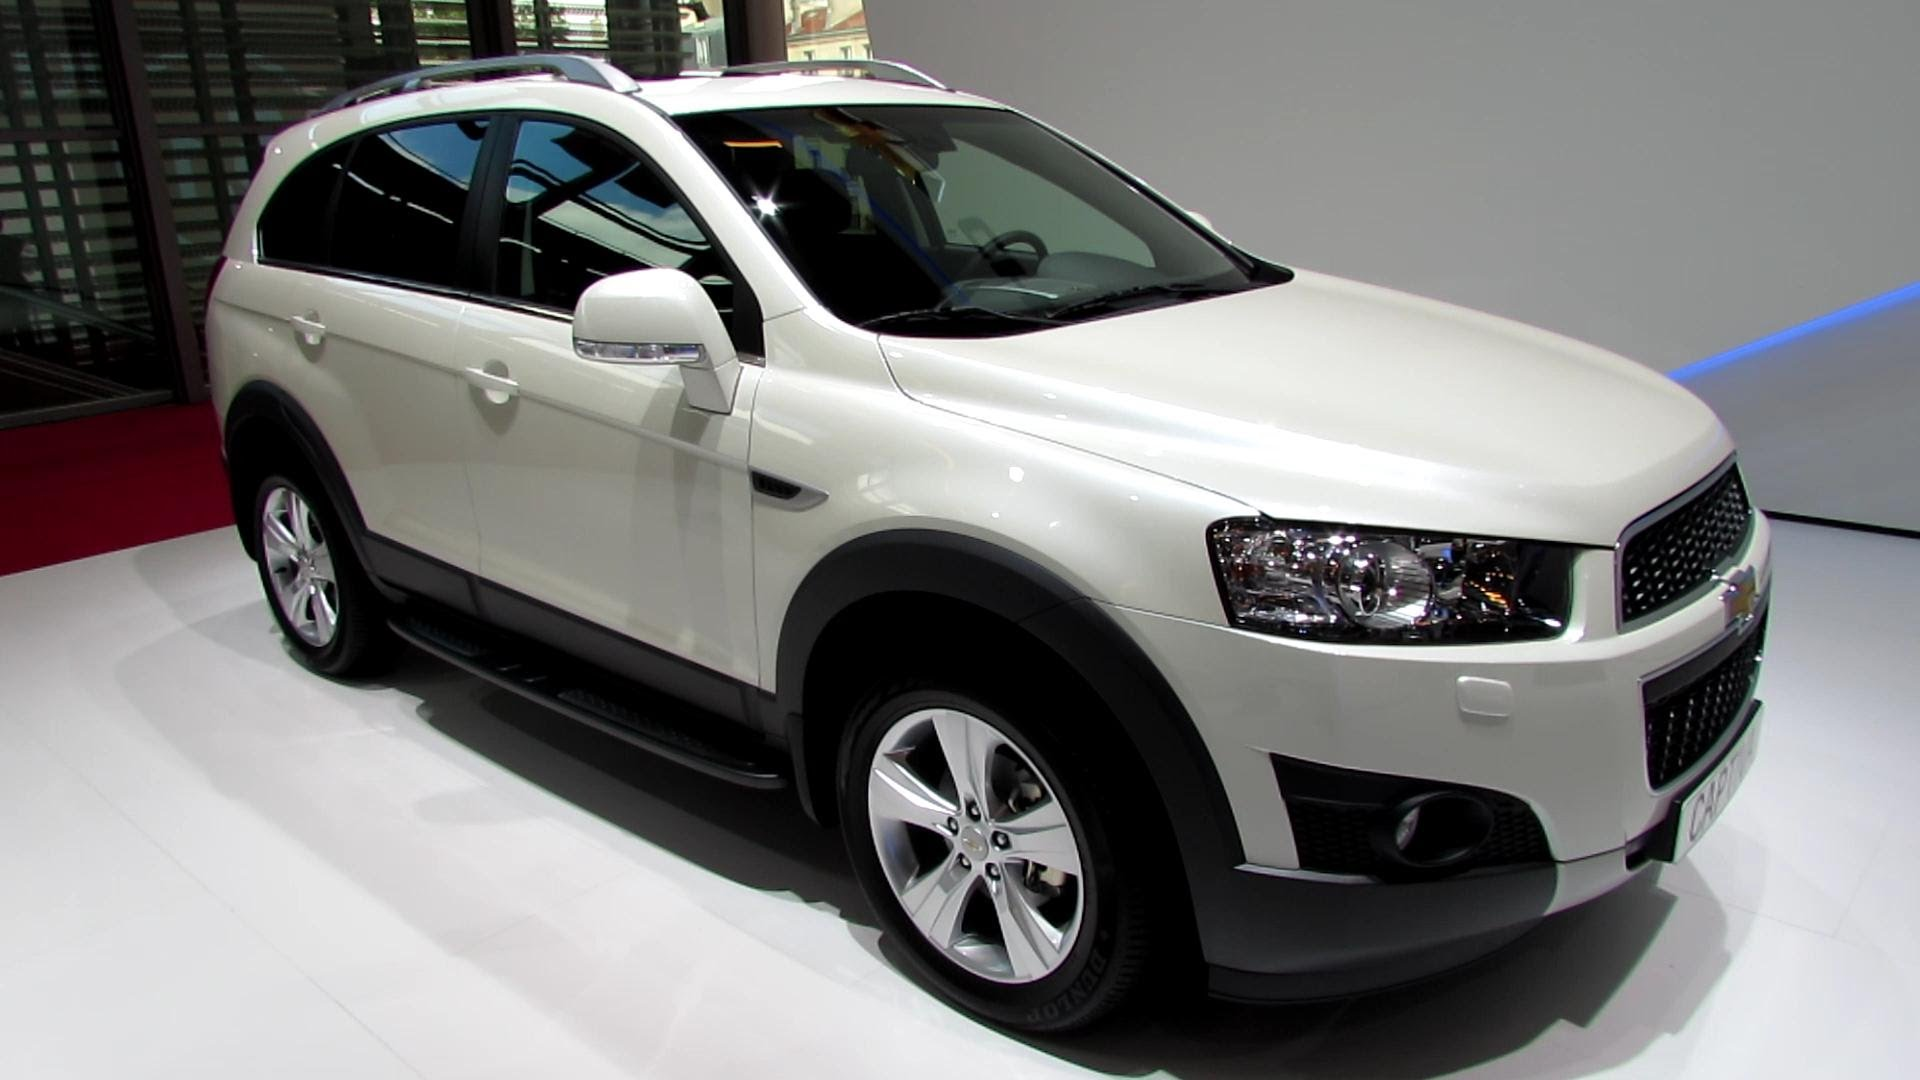 Cars chevrolet captiva 2015 #15